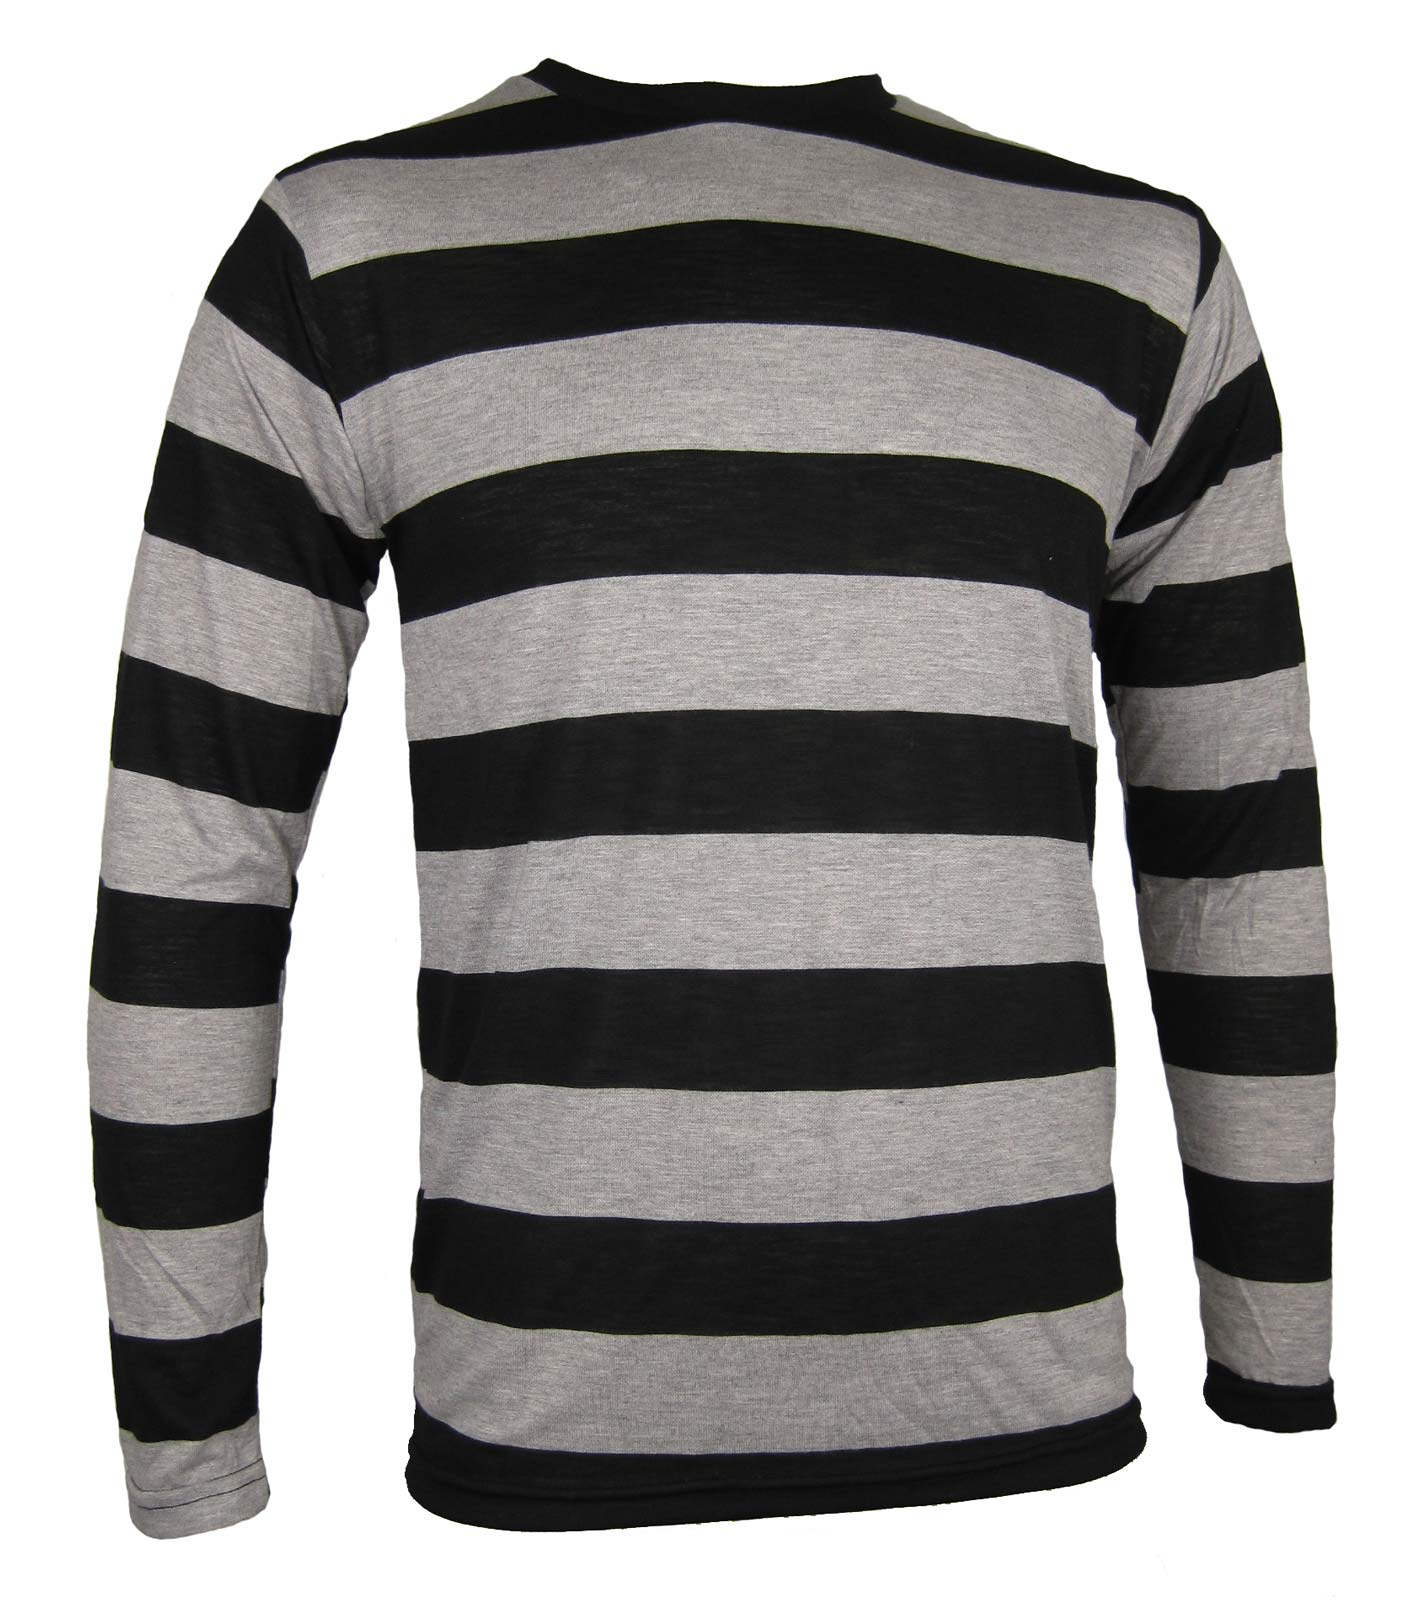 grey and black striped shirt | Gommap Blog